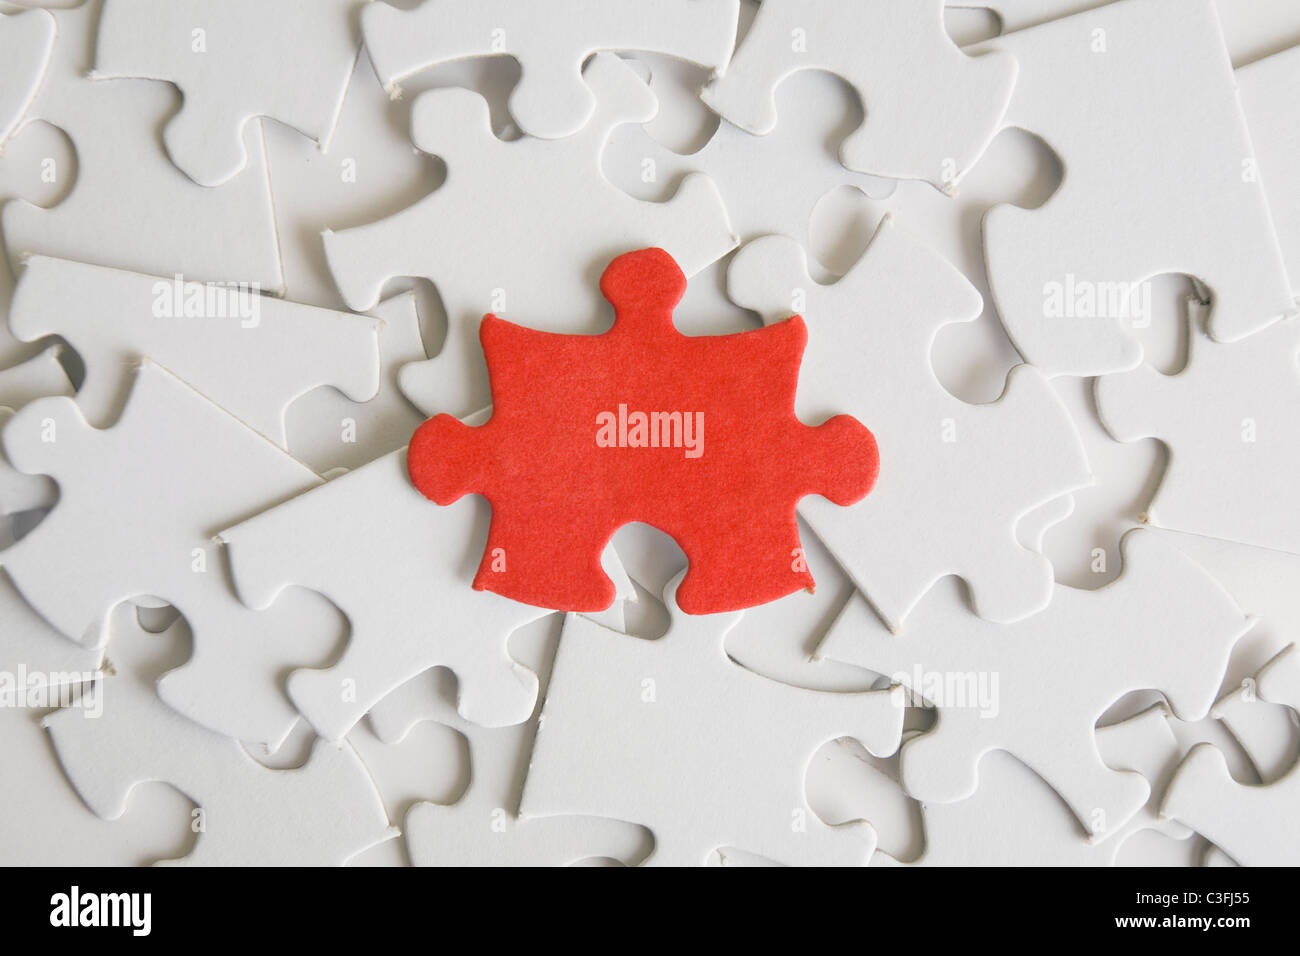 One red jigsaw piece on a pìle of blank ones.  - Stock Image